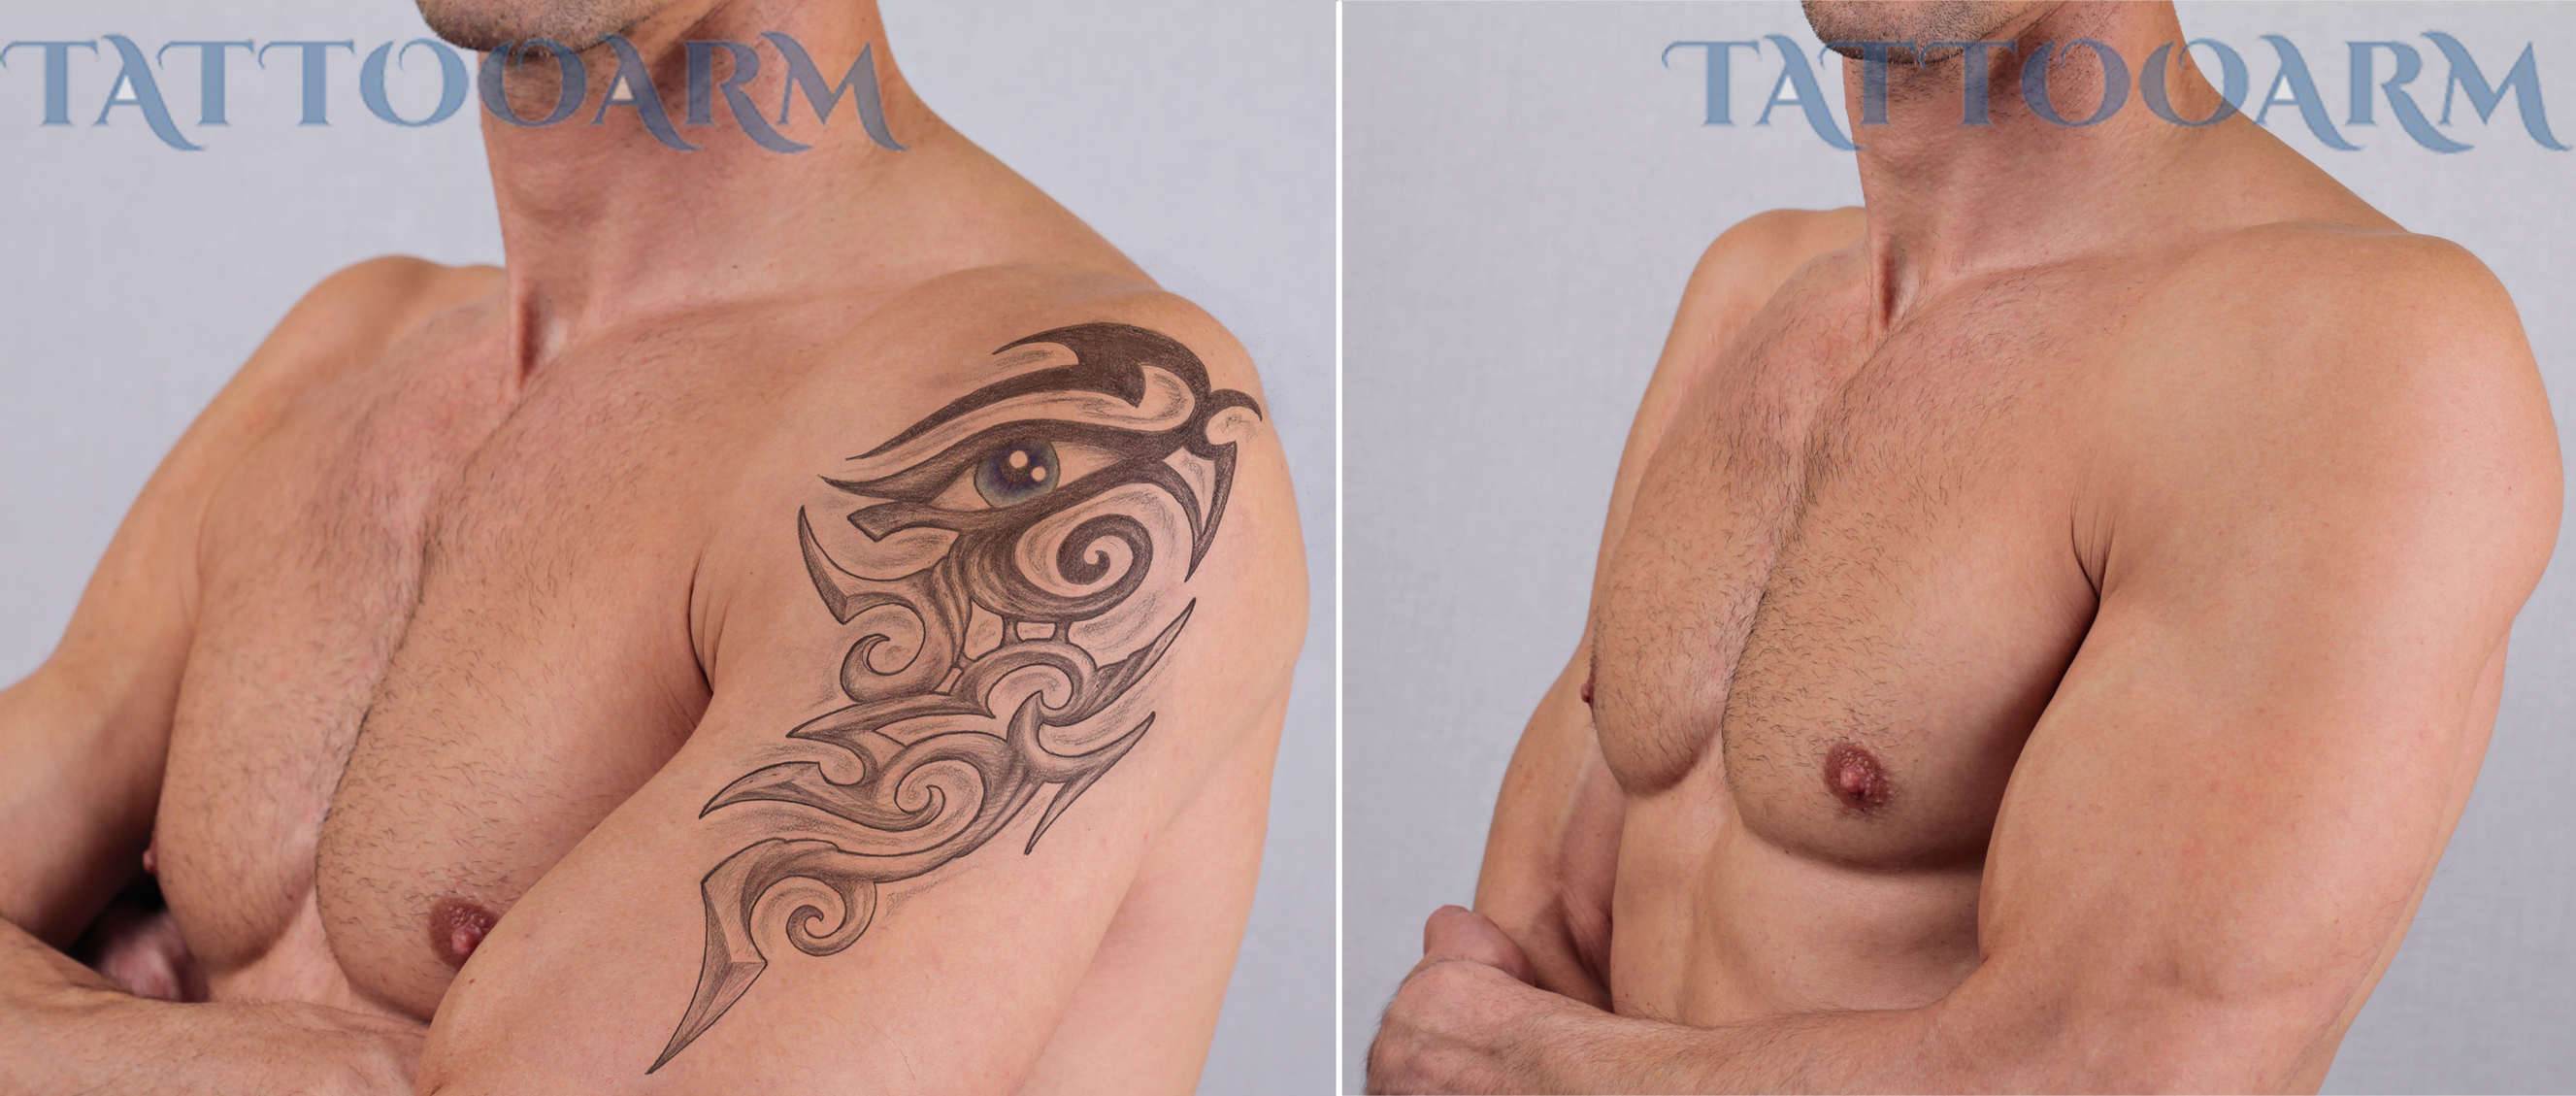 How to Remove Permanent Tattoos Without Laser Surgery?